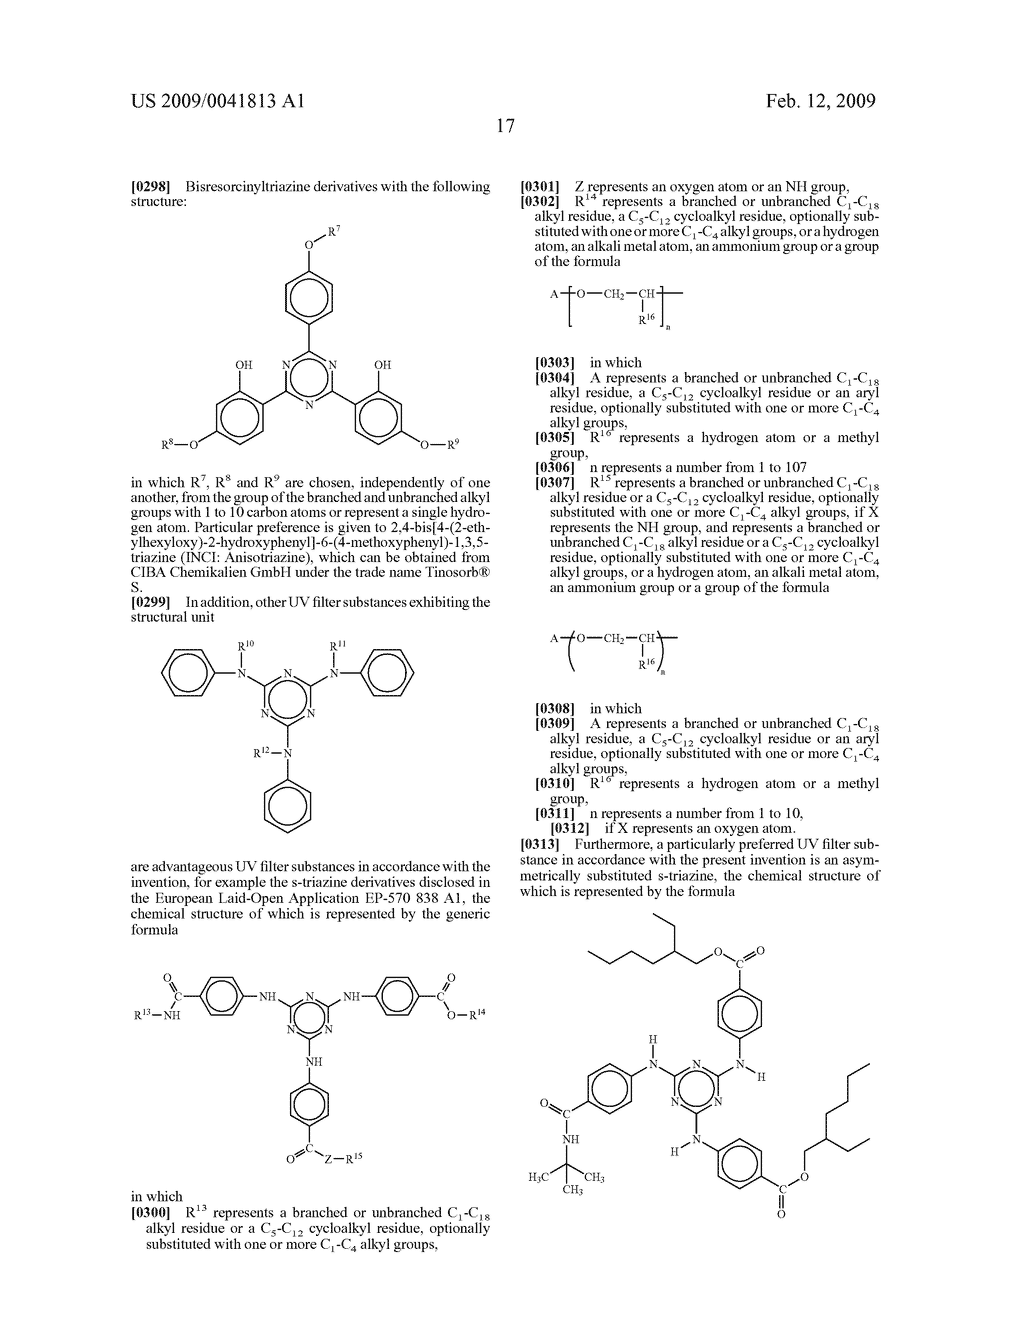 ACTIVE SUBSTANCE COMPOSITION COMPRISING AT LEAST ONE NITROGEN ATOM-CONTAINING, HYPERBRANCHED POLYMER - diagram, schematic, and image 18